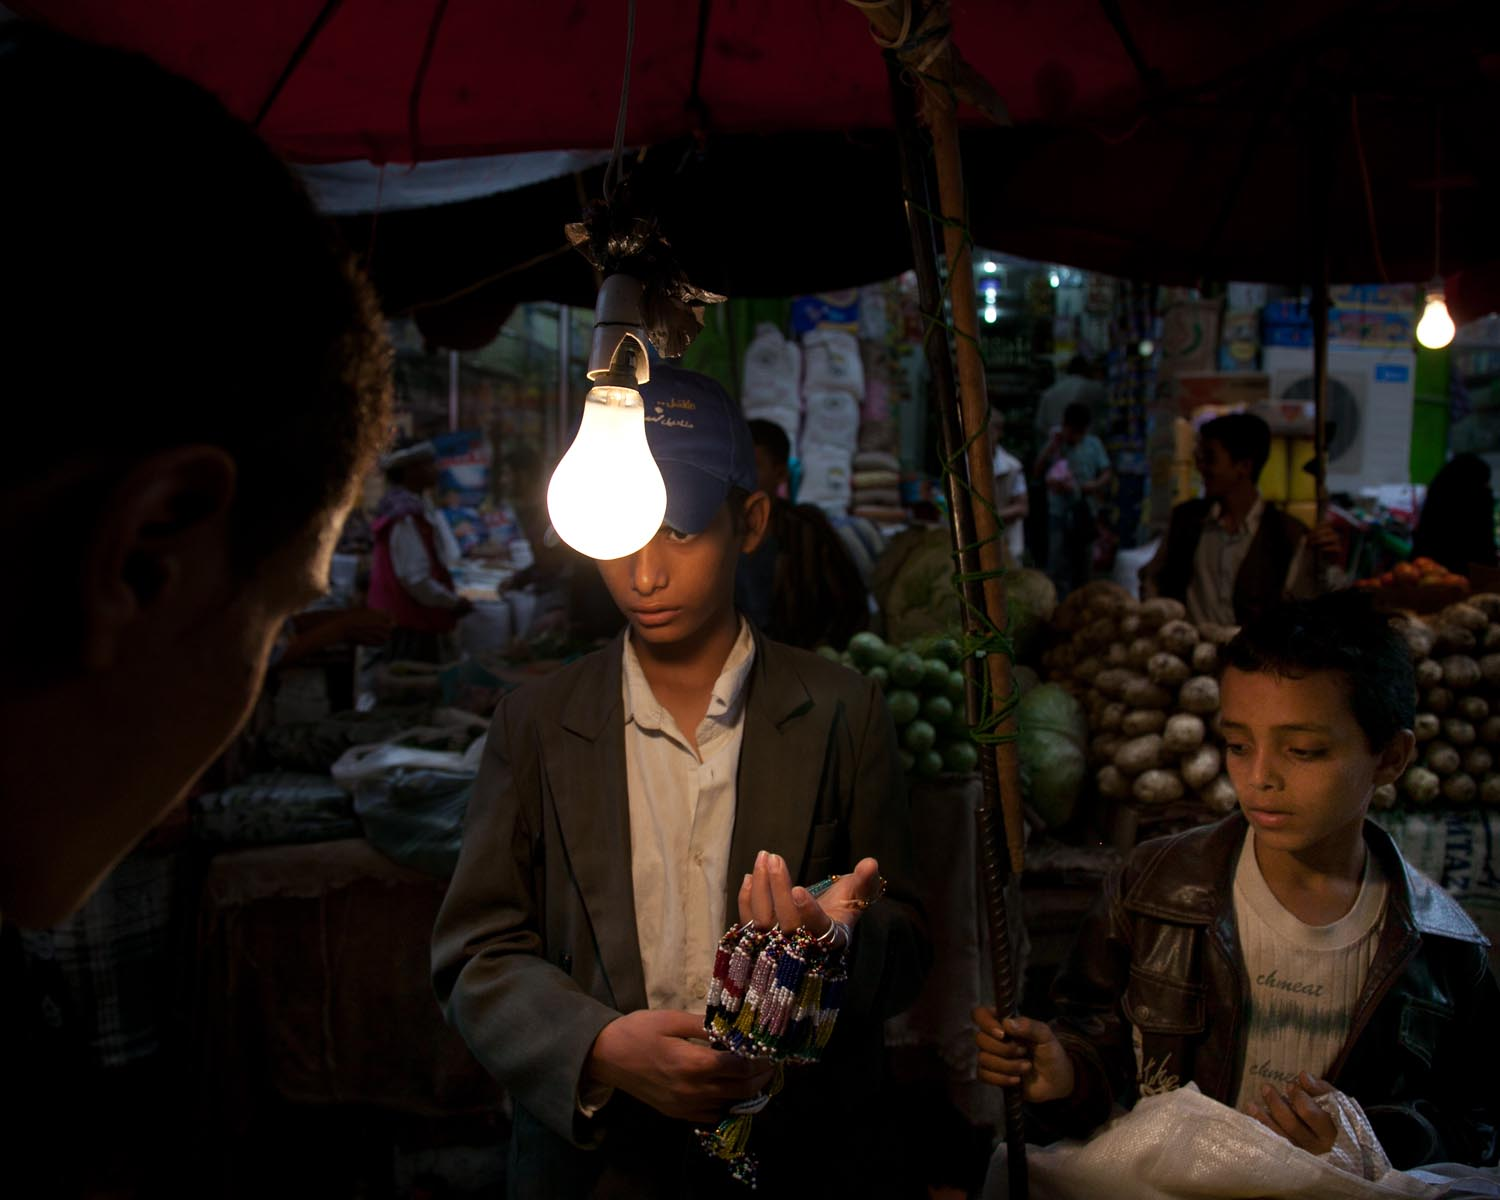 Children sell necklaces at a market in the southern city of Taiz. August 2010.